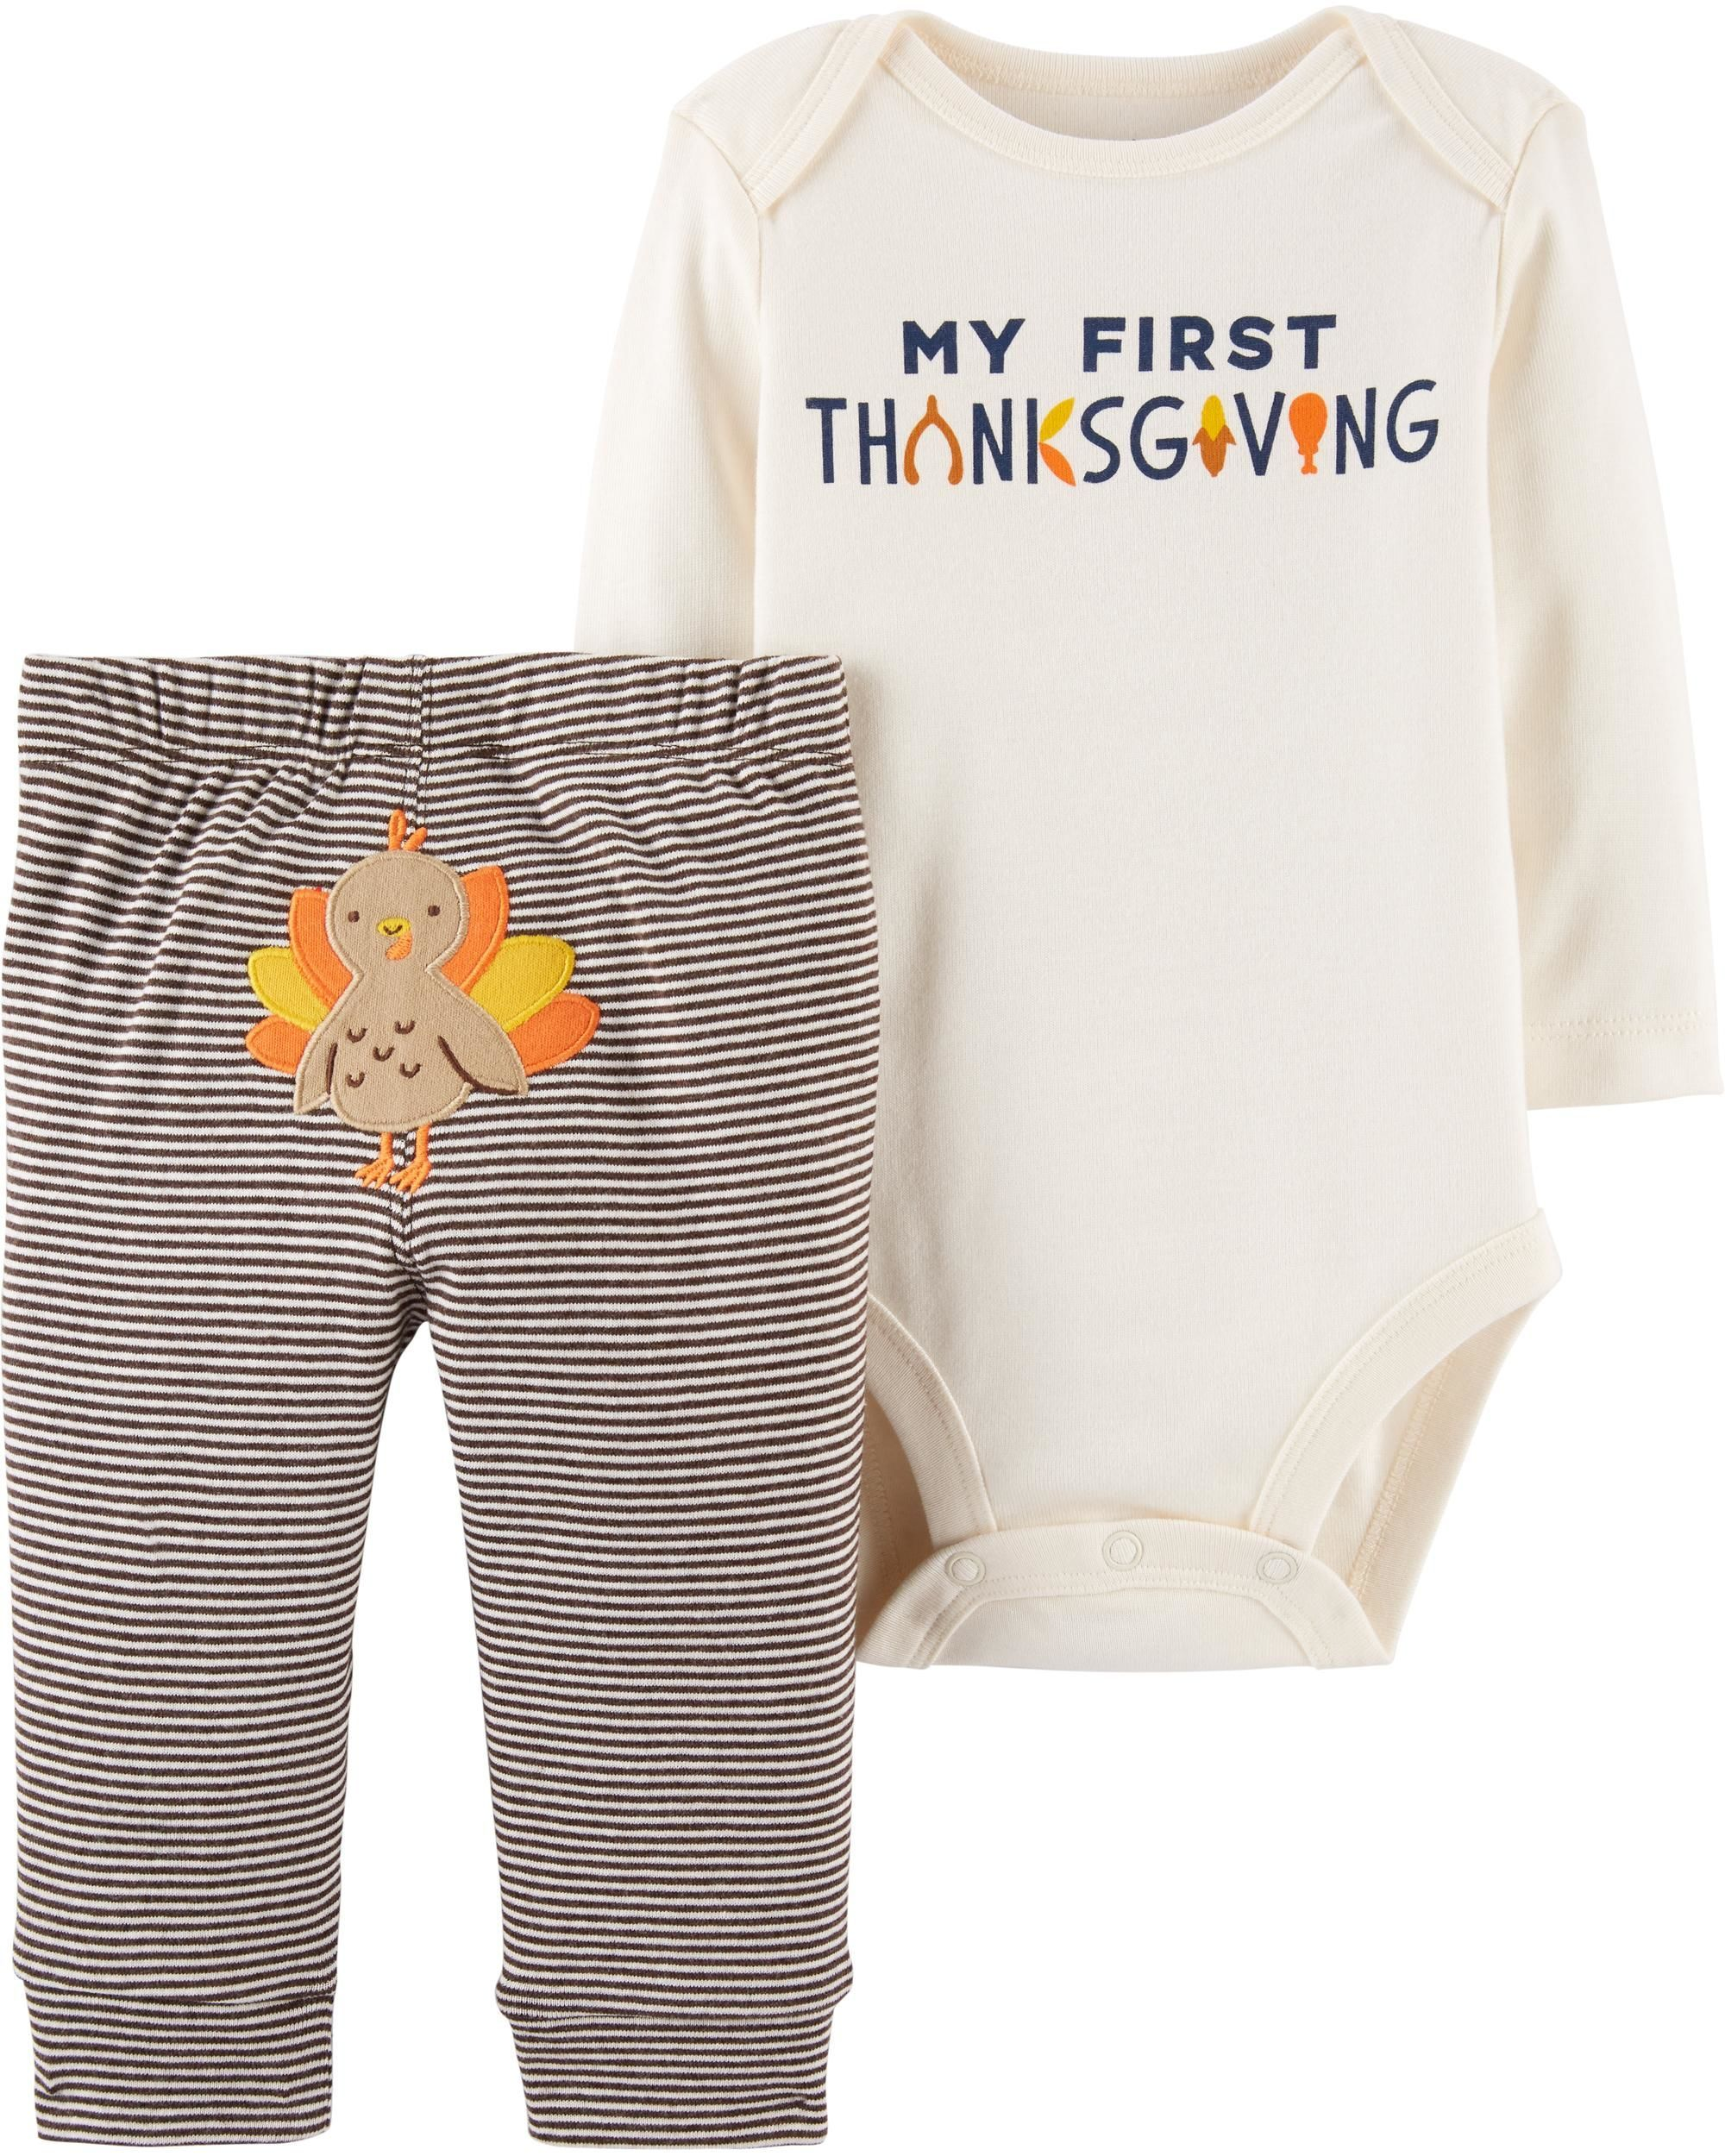 04230b4a2bfb 20 Baby Thanksgiving Outfits - Cute Girl   Boy Infant Clothes for ...